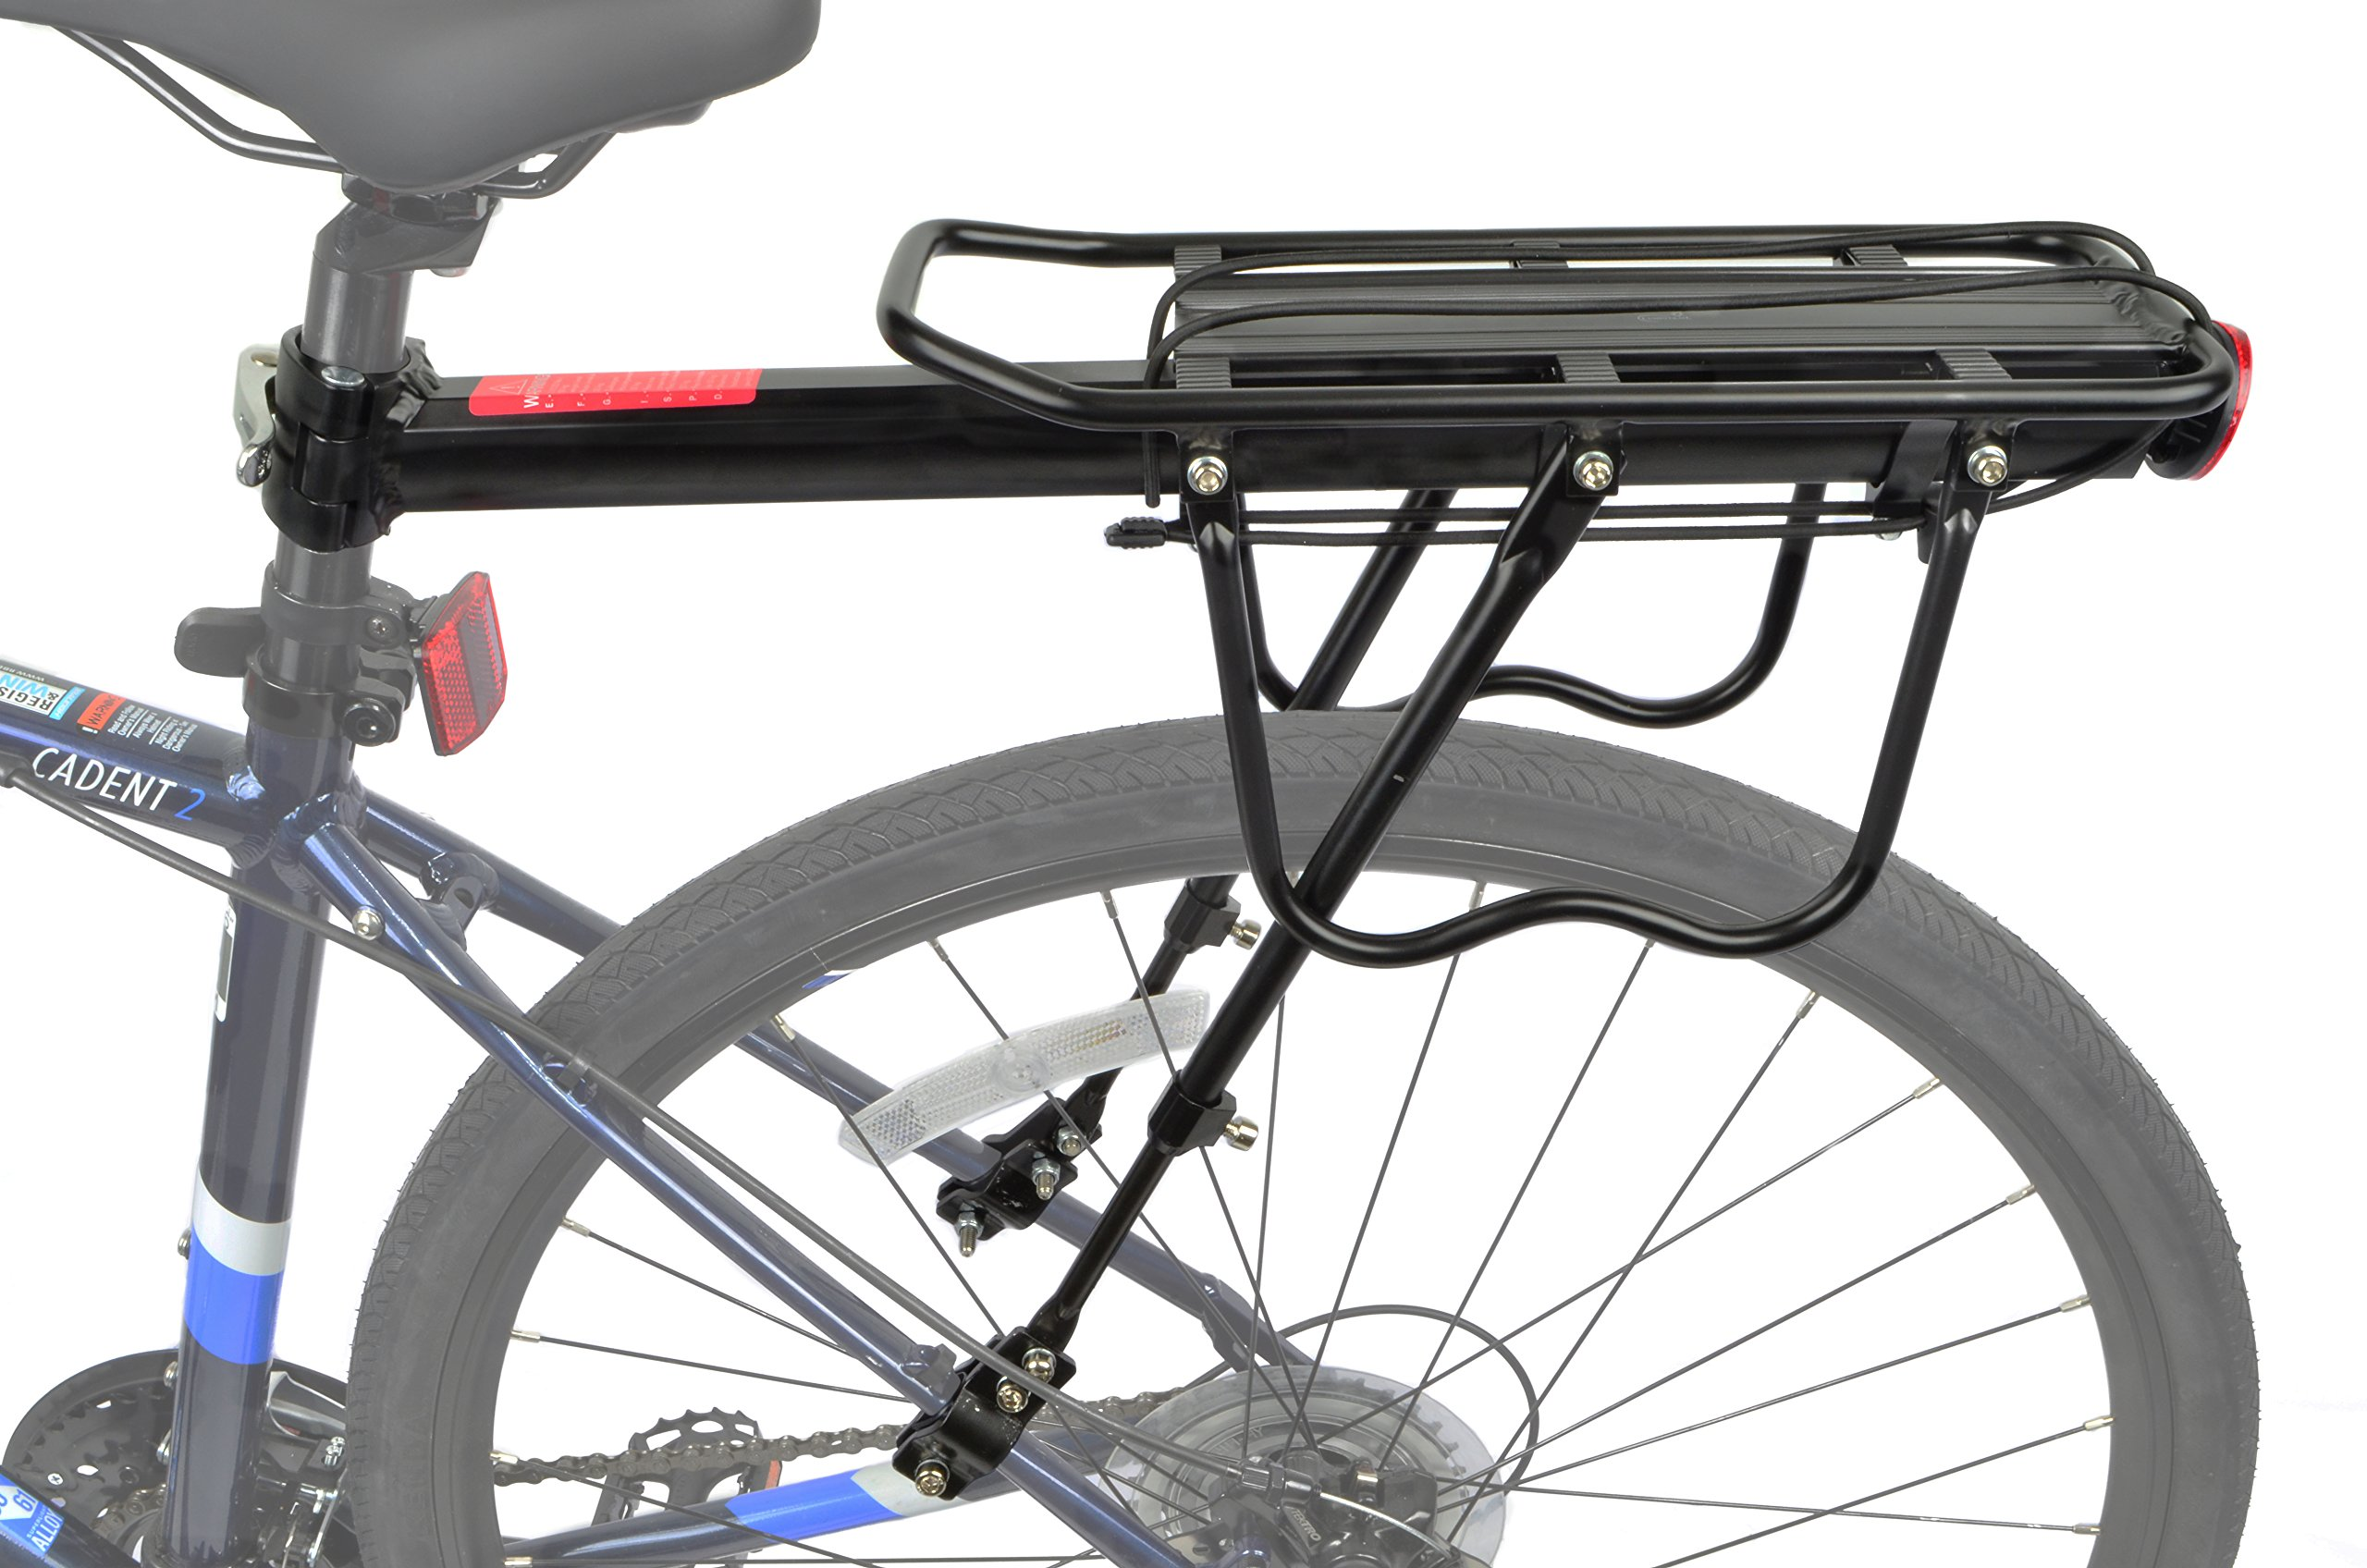 Lumintrail Bicycle Commuter Carrier Rear Seatpost Frame Mounted Bike Cargo Rack for Heavier Top and Side Loads